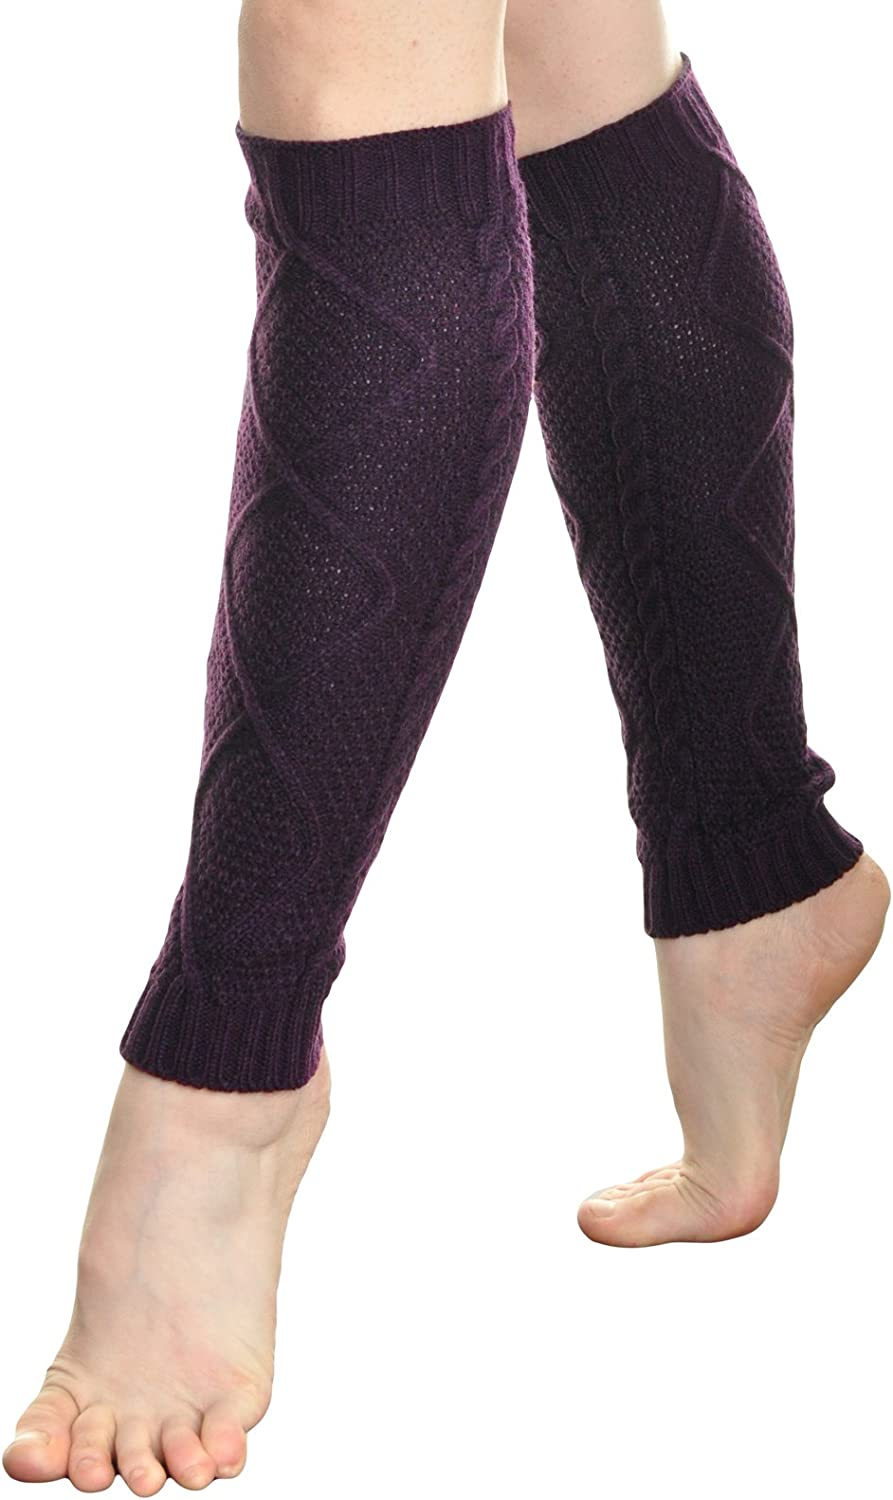 Angelina Cozy Cable Warmer Max 60% OFF Leg Knit quality assurance